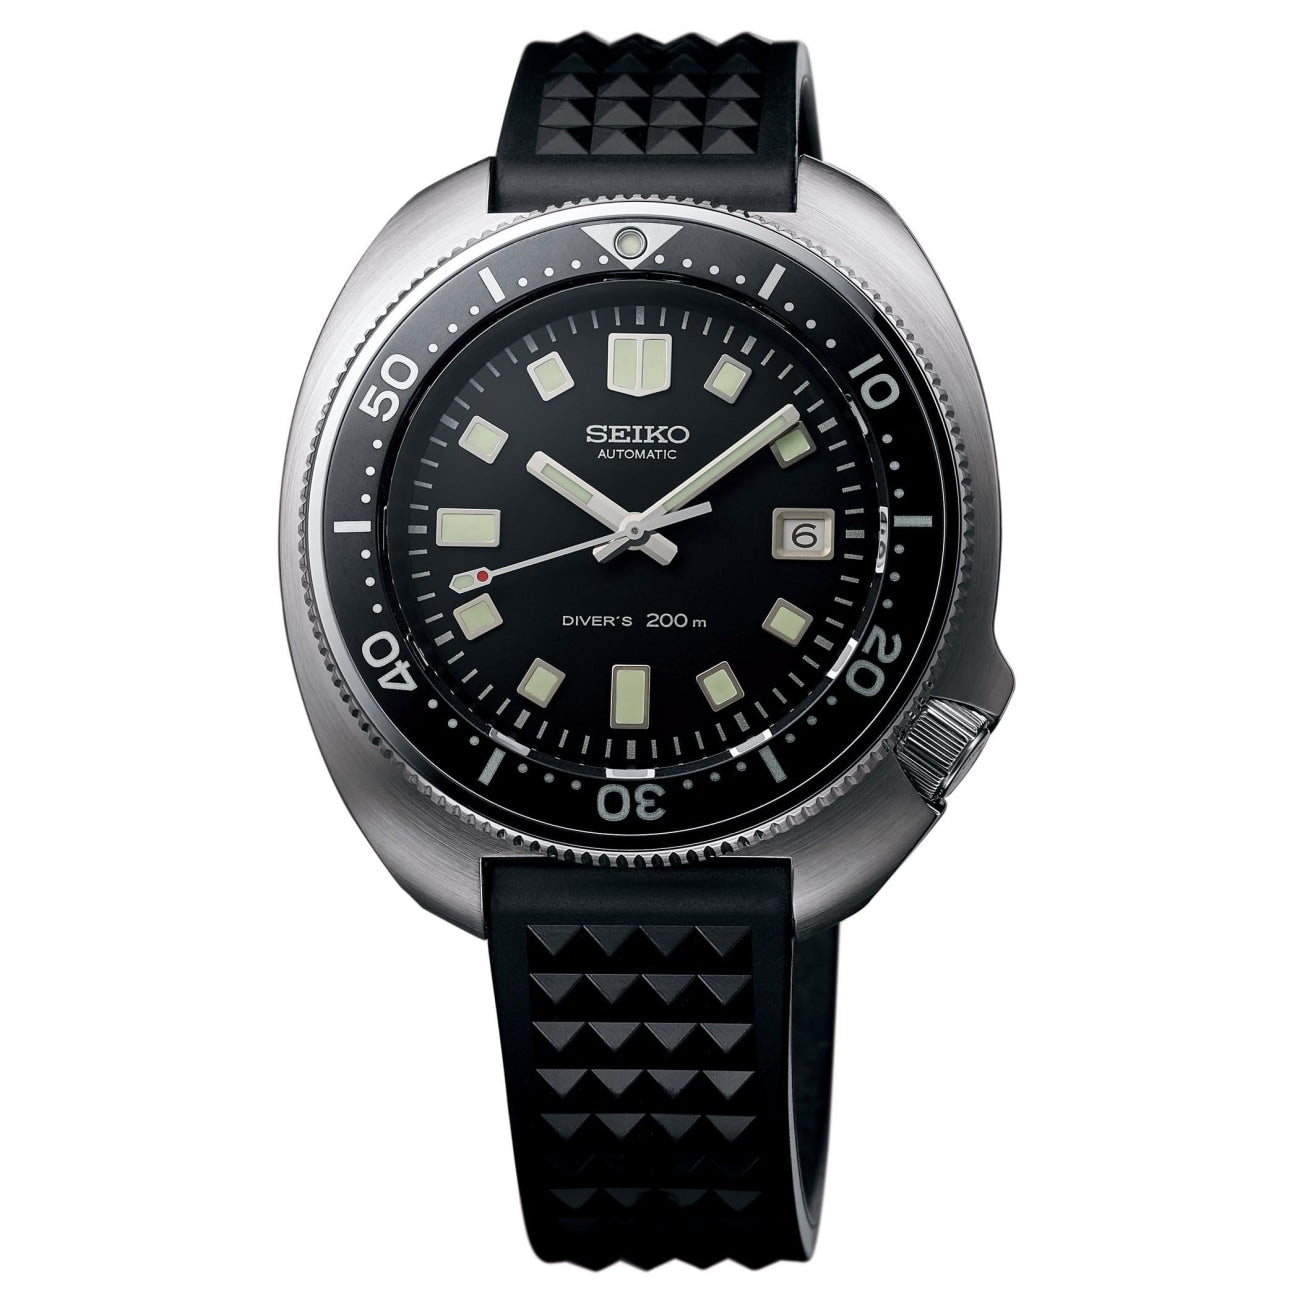 Seiko Watches - SEIKO 1970 DIVER'S RE-CREATION LIMITED EDITION SLA033 | Manfredi Jewels